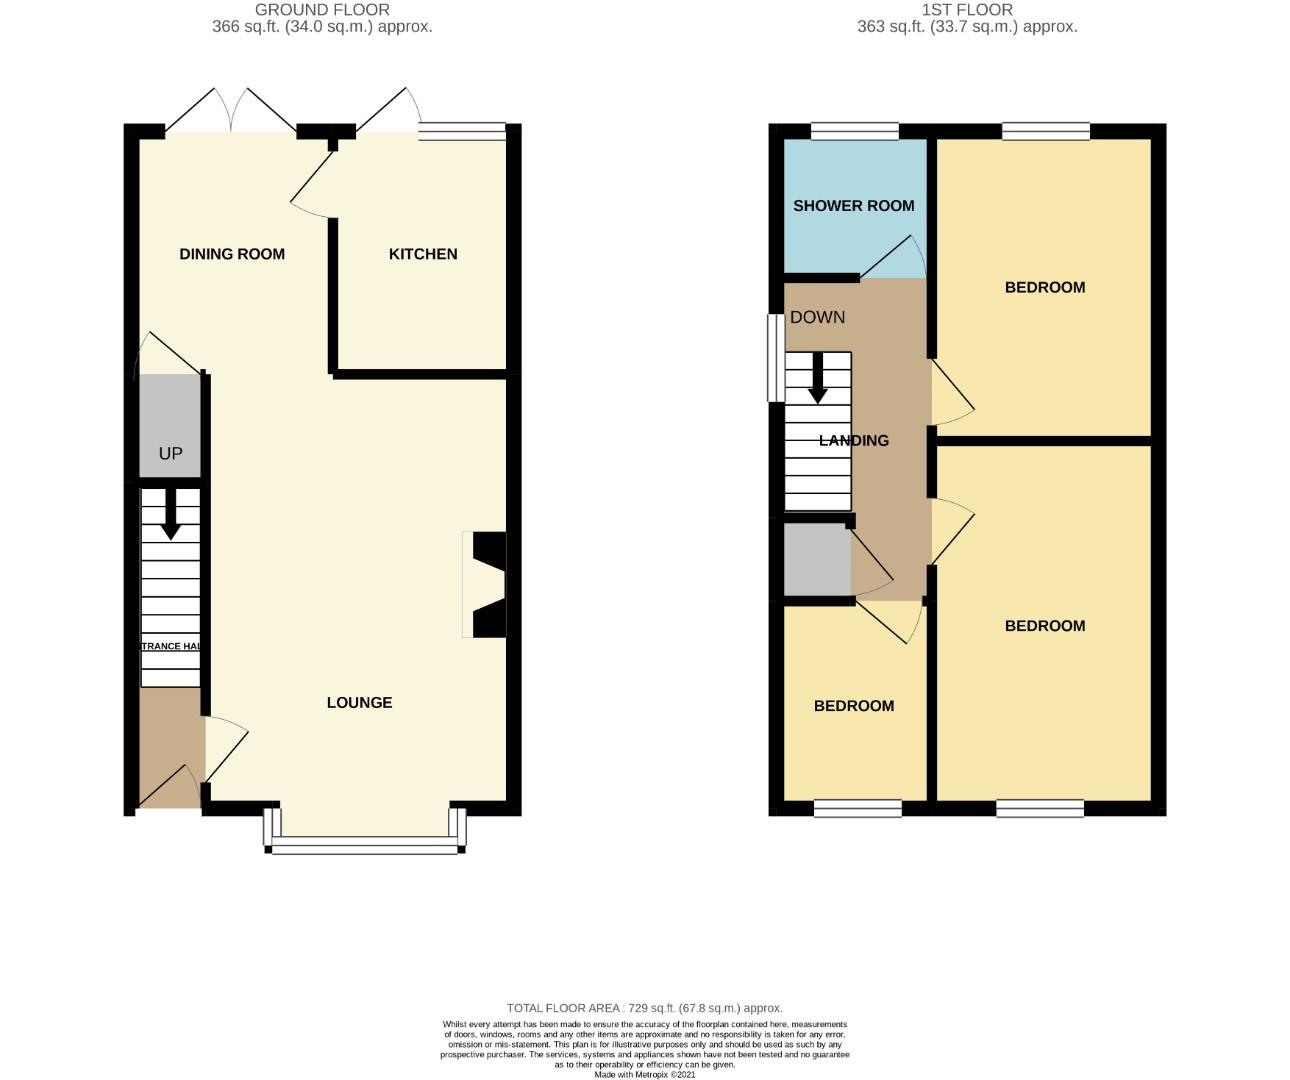 Floorplans For Claregate, Northampton